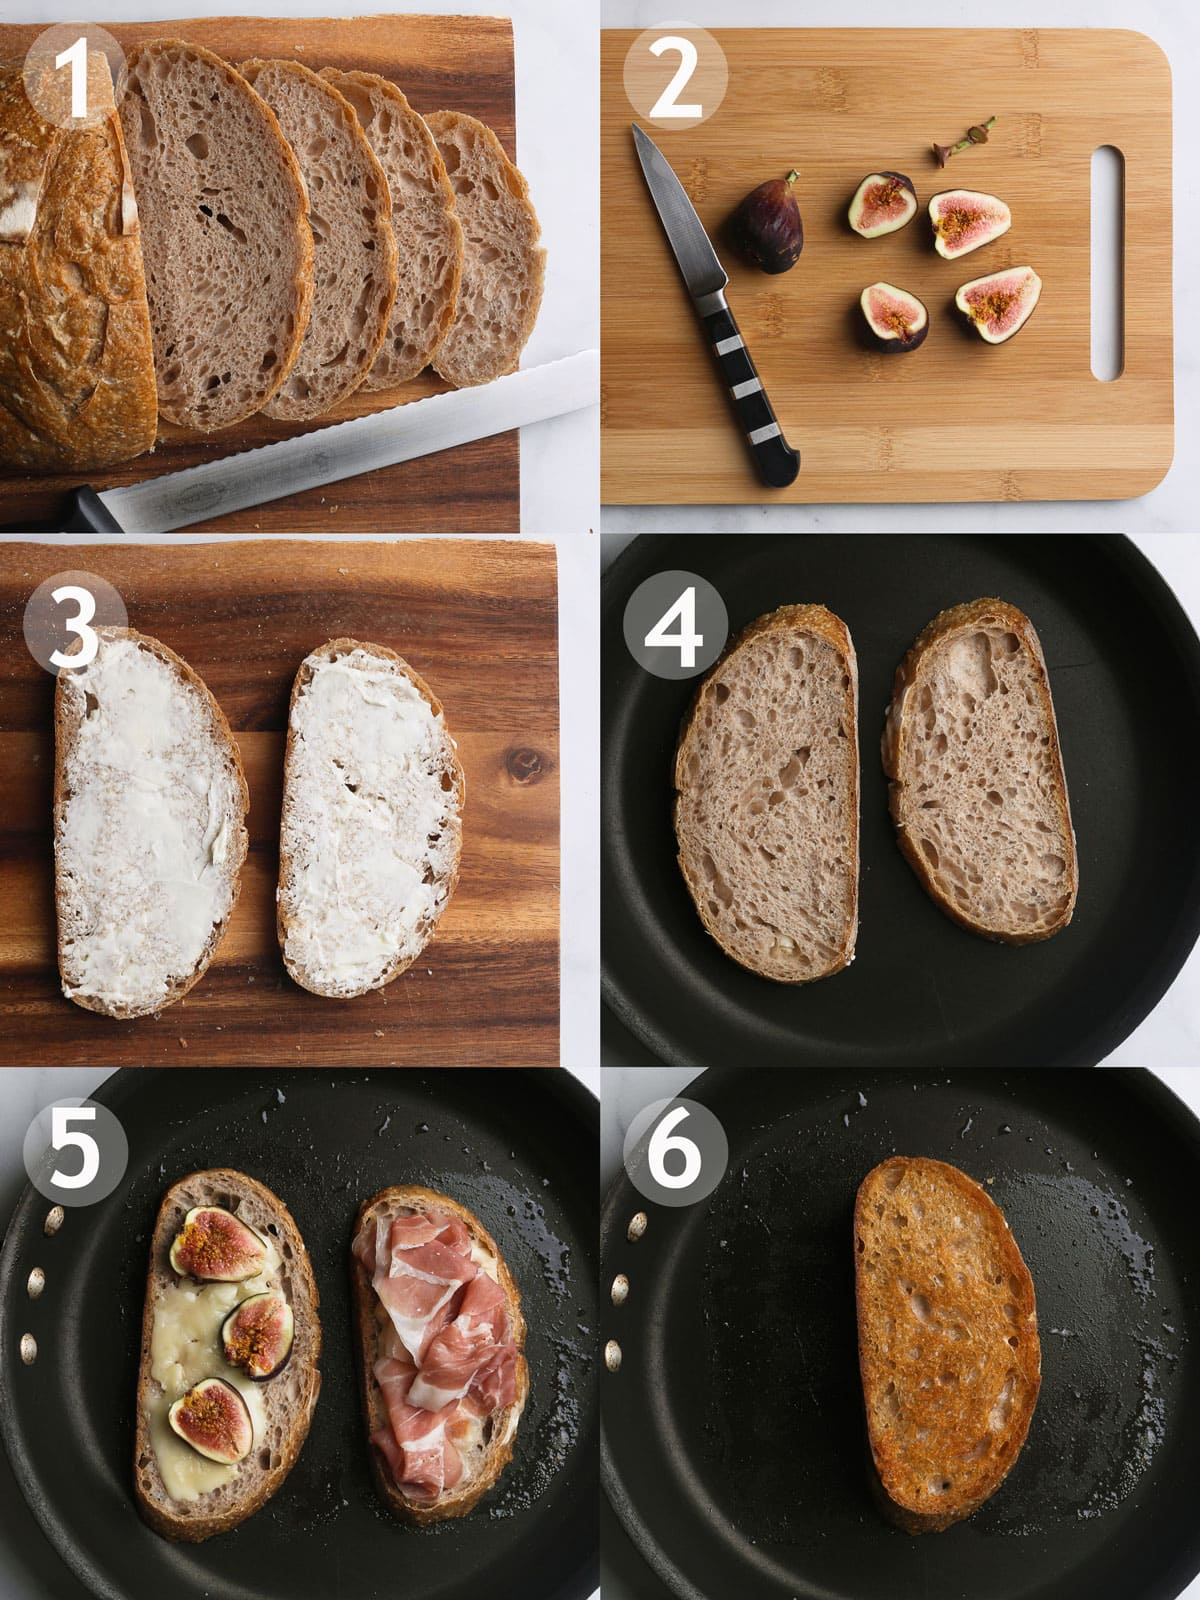 Steps to make grilled cheese including slicing, buttering and toasting the bread, layering on the other ingredients, and melting the cheese.